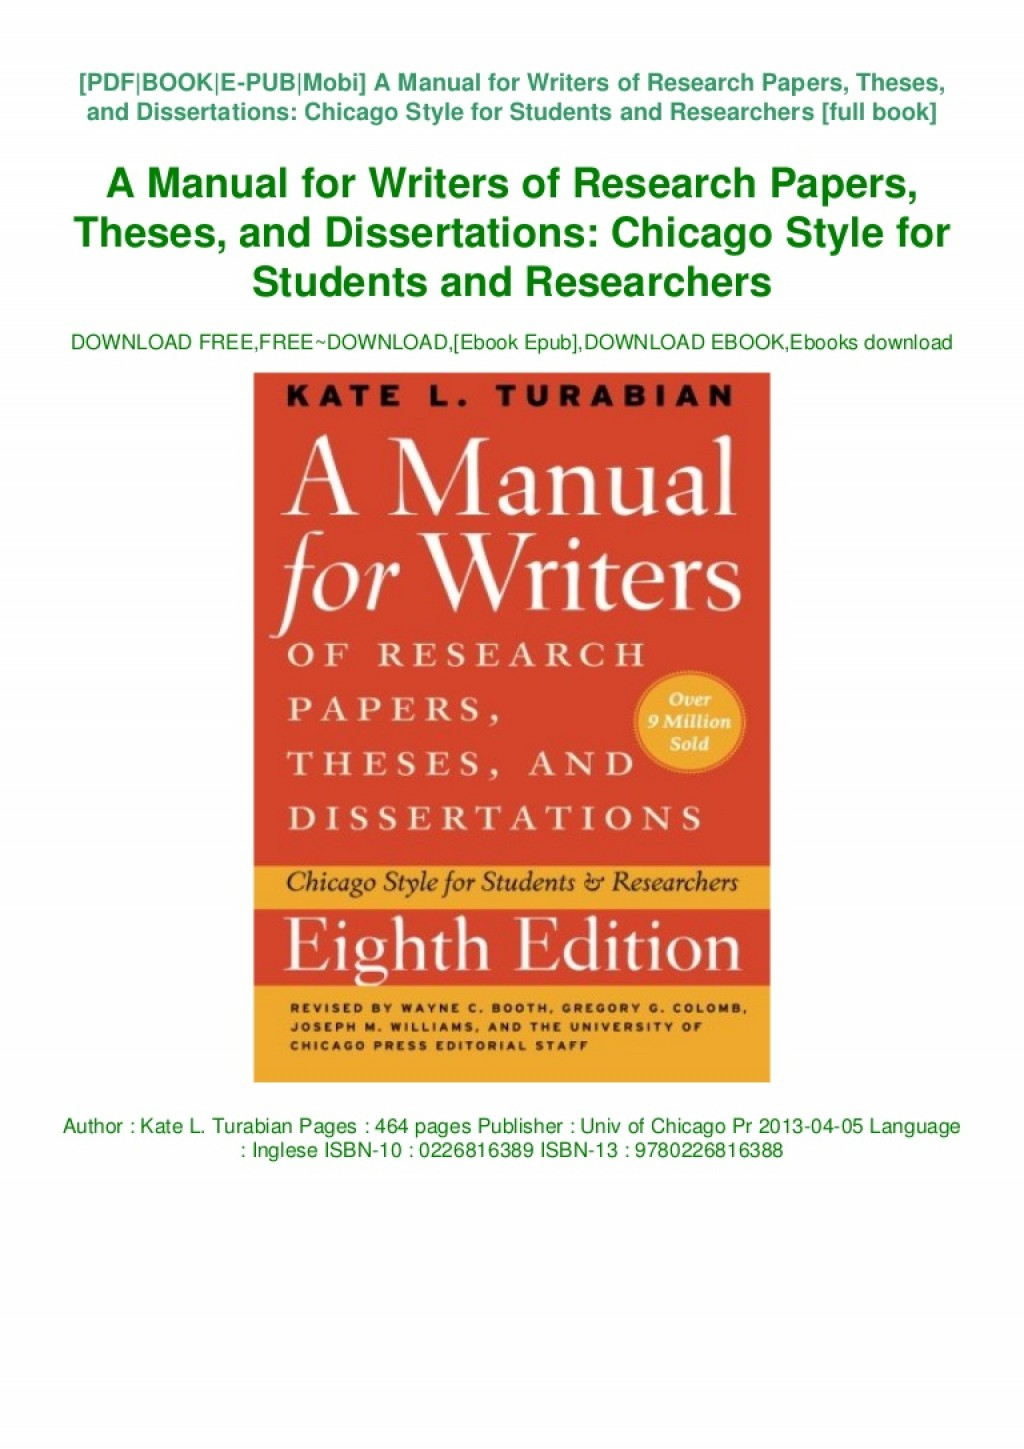 006 Book Manual For Writers Of Research Papers Theses And Thumbnail Paper Dissertations Fearsome A Ed 8 Large